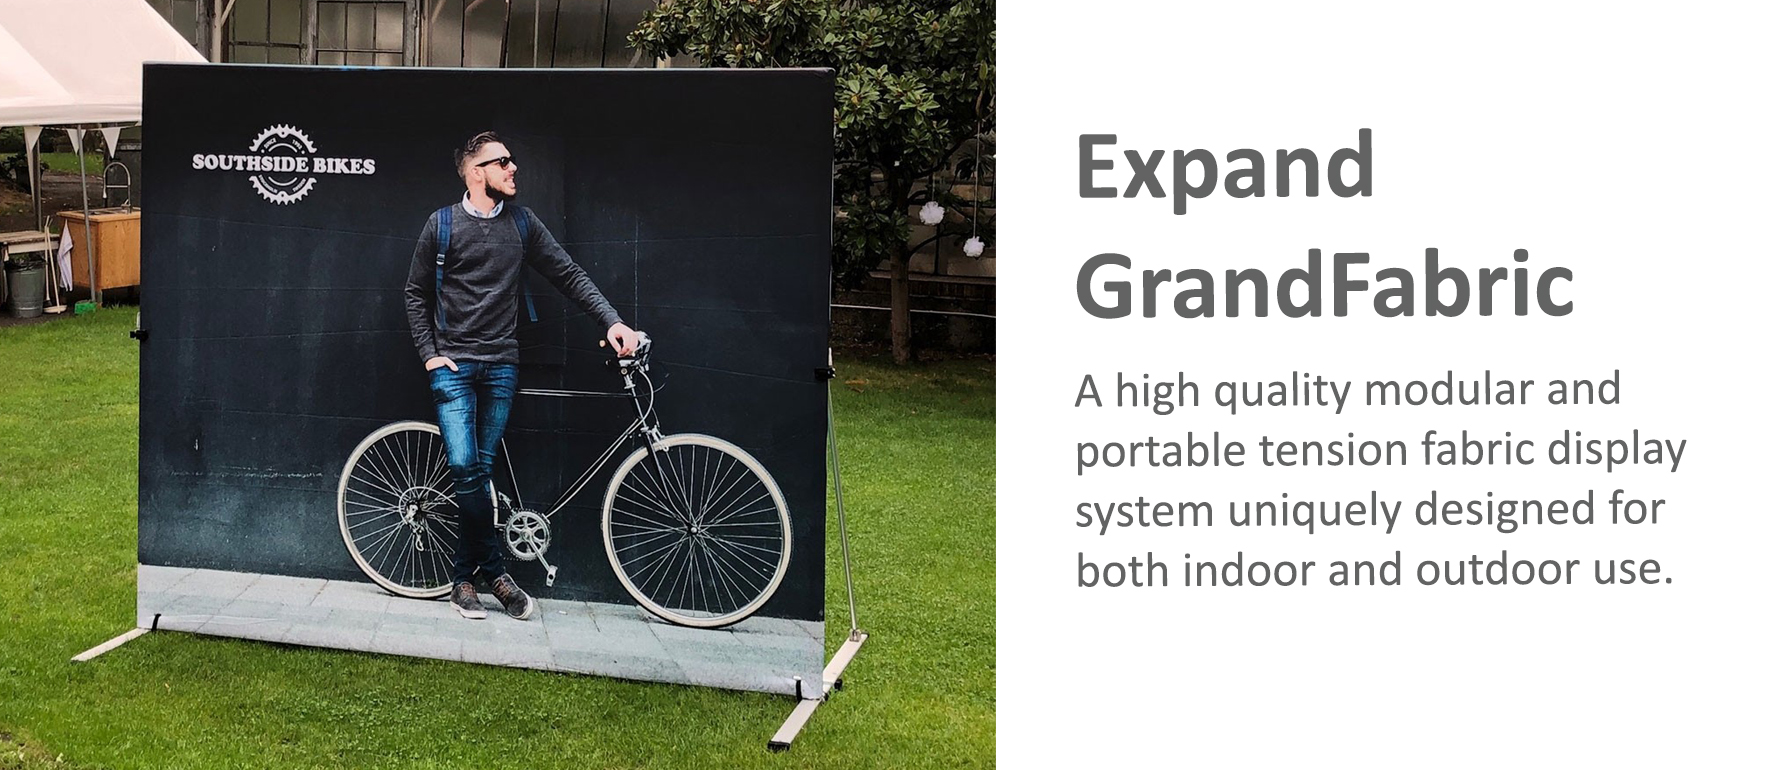 Introducing Our New Exand GrandFabric